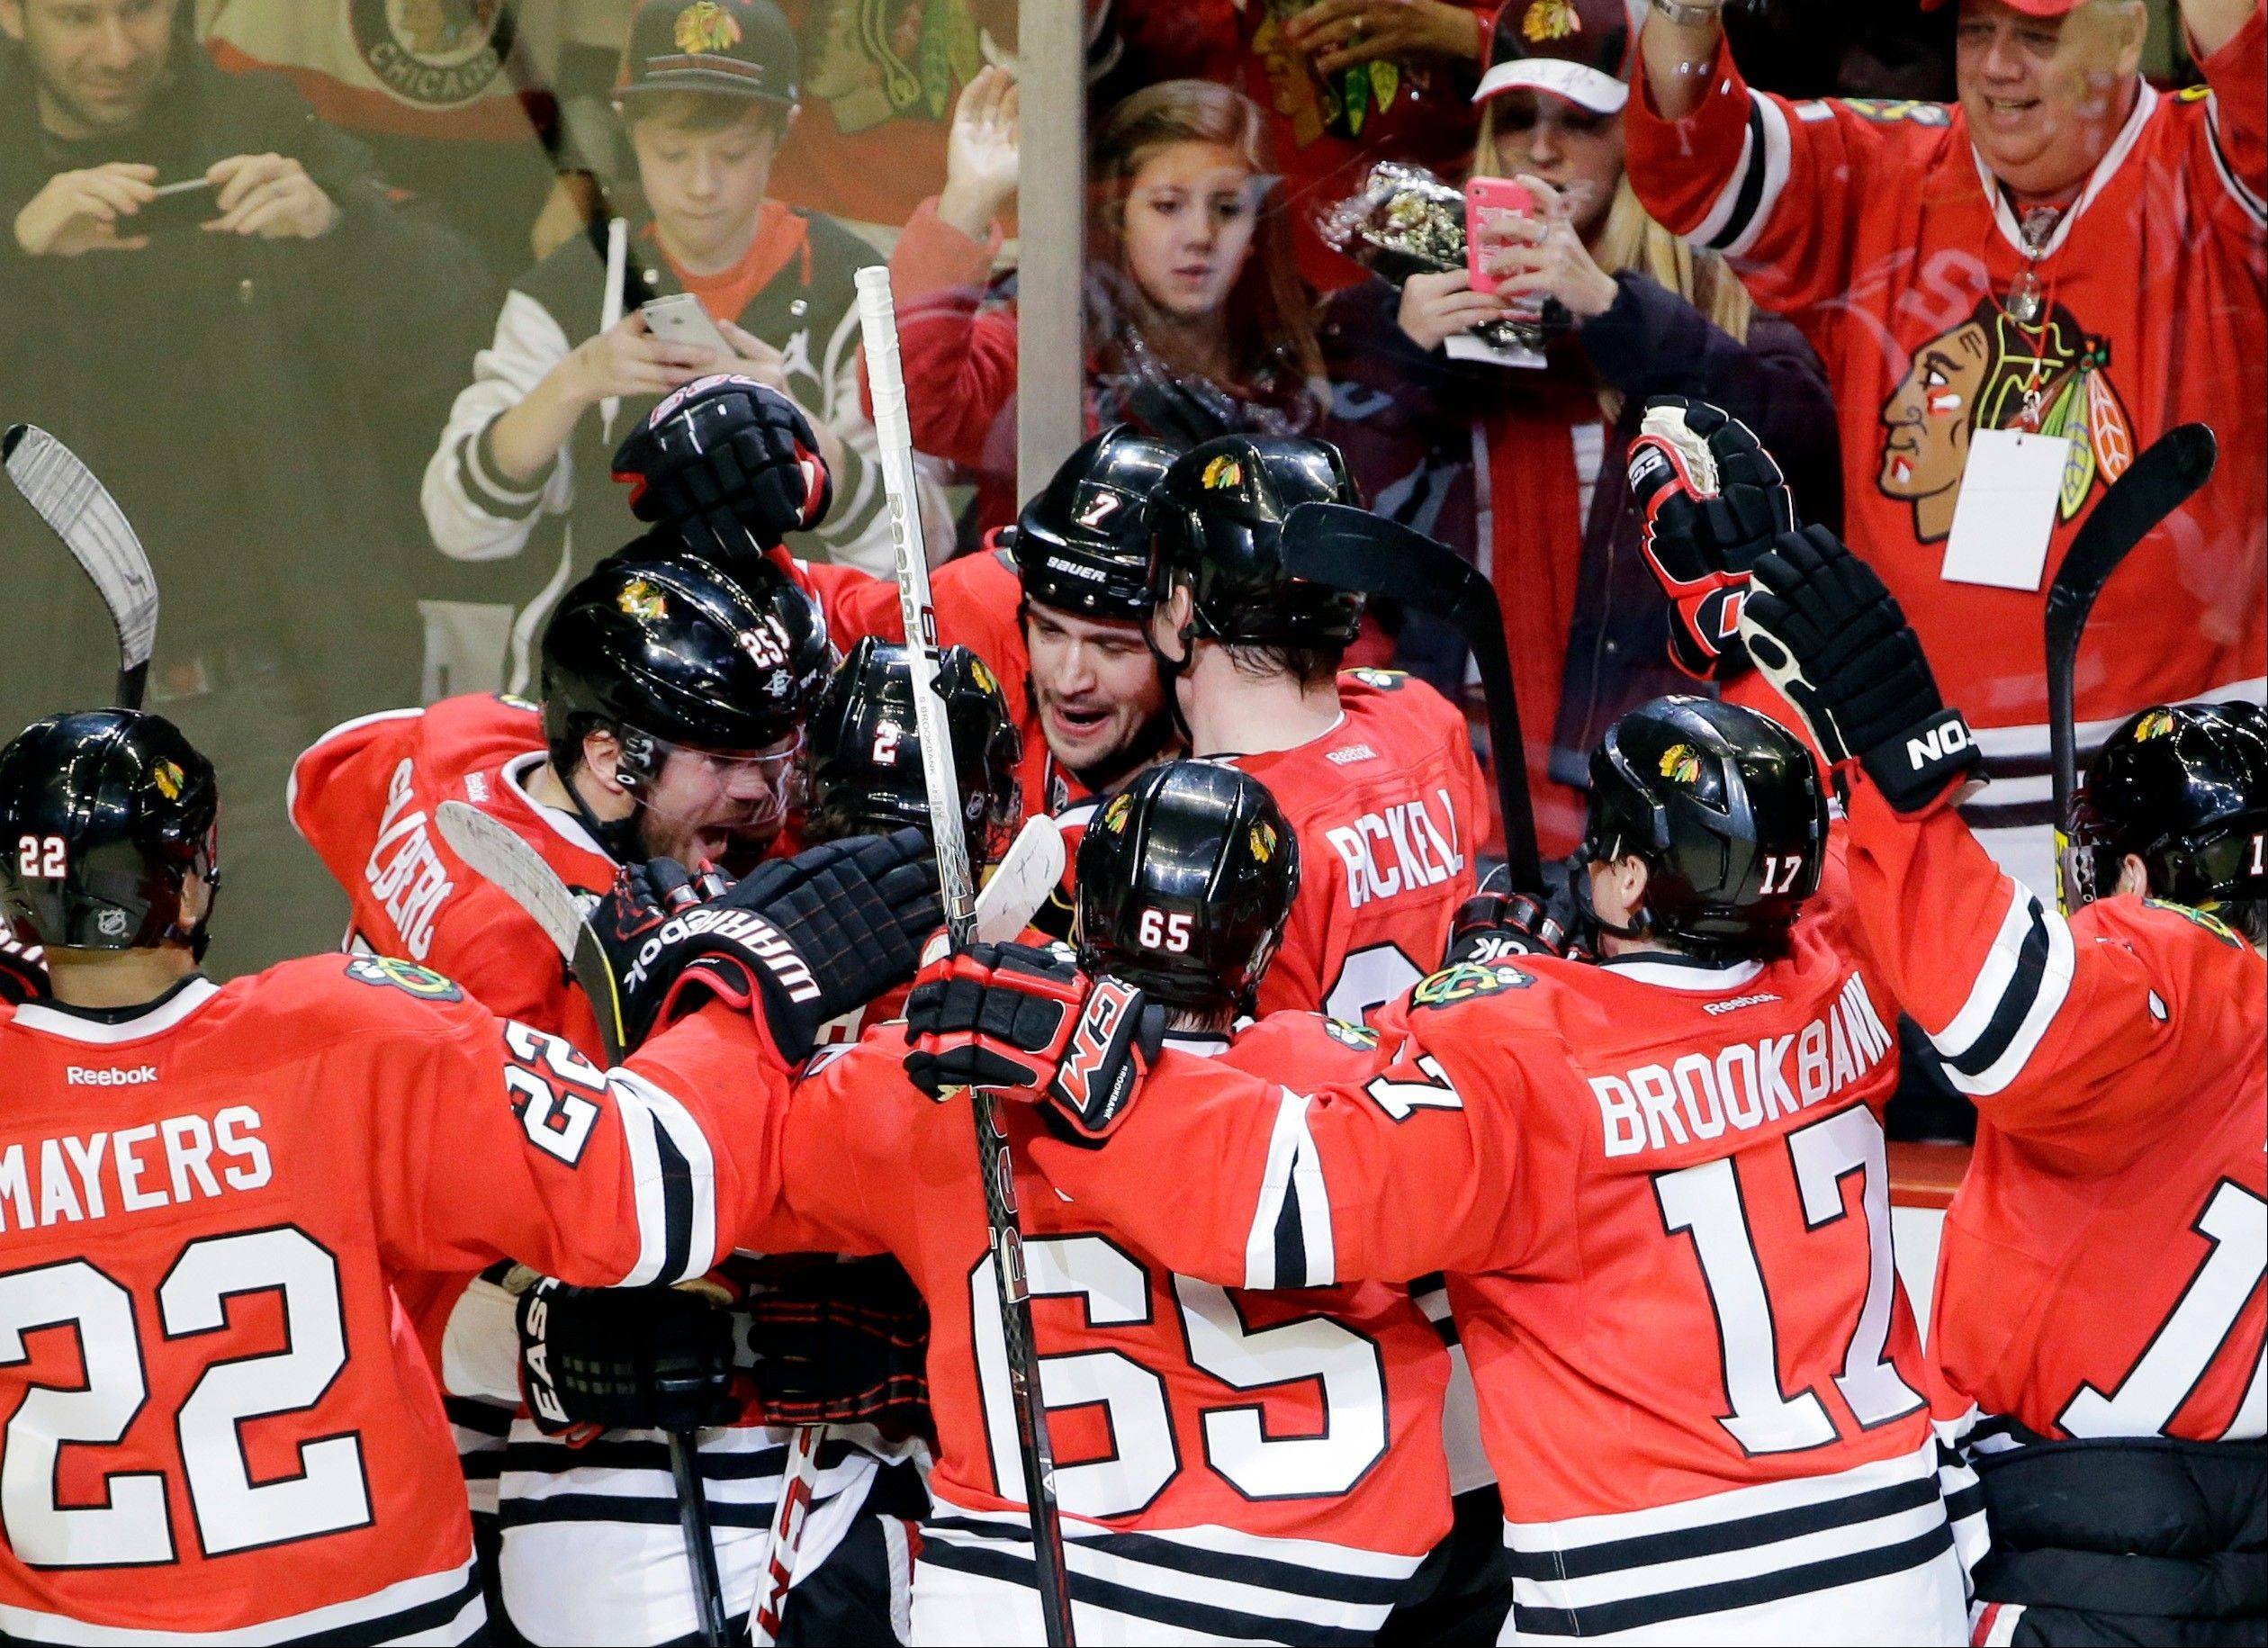 Chicago Blackhawks' Brent Seabrook, center, celebrates with teammates after scoring his game-winning goal during overtime.